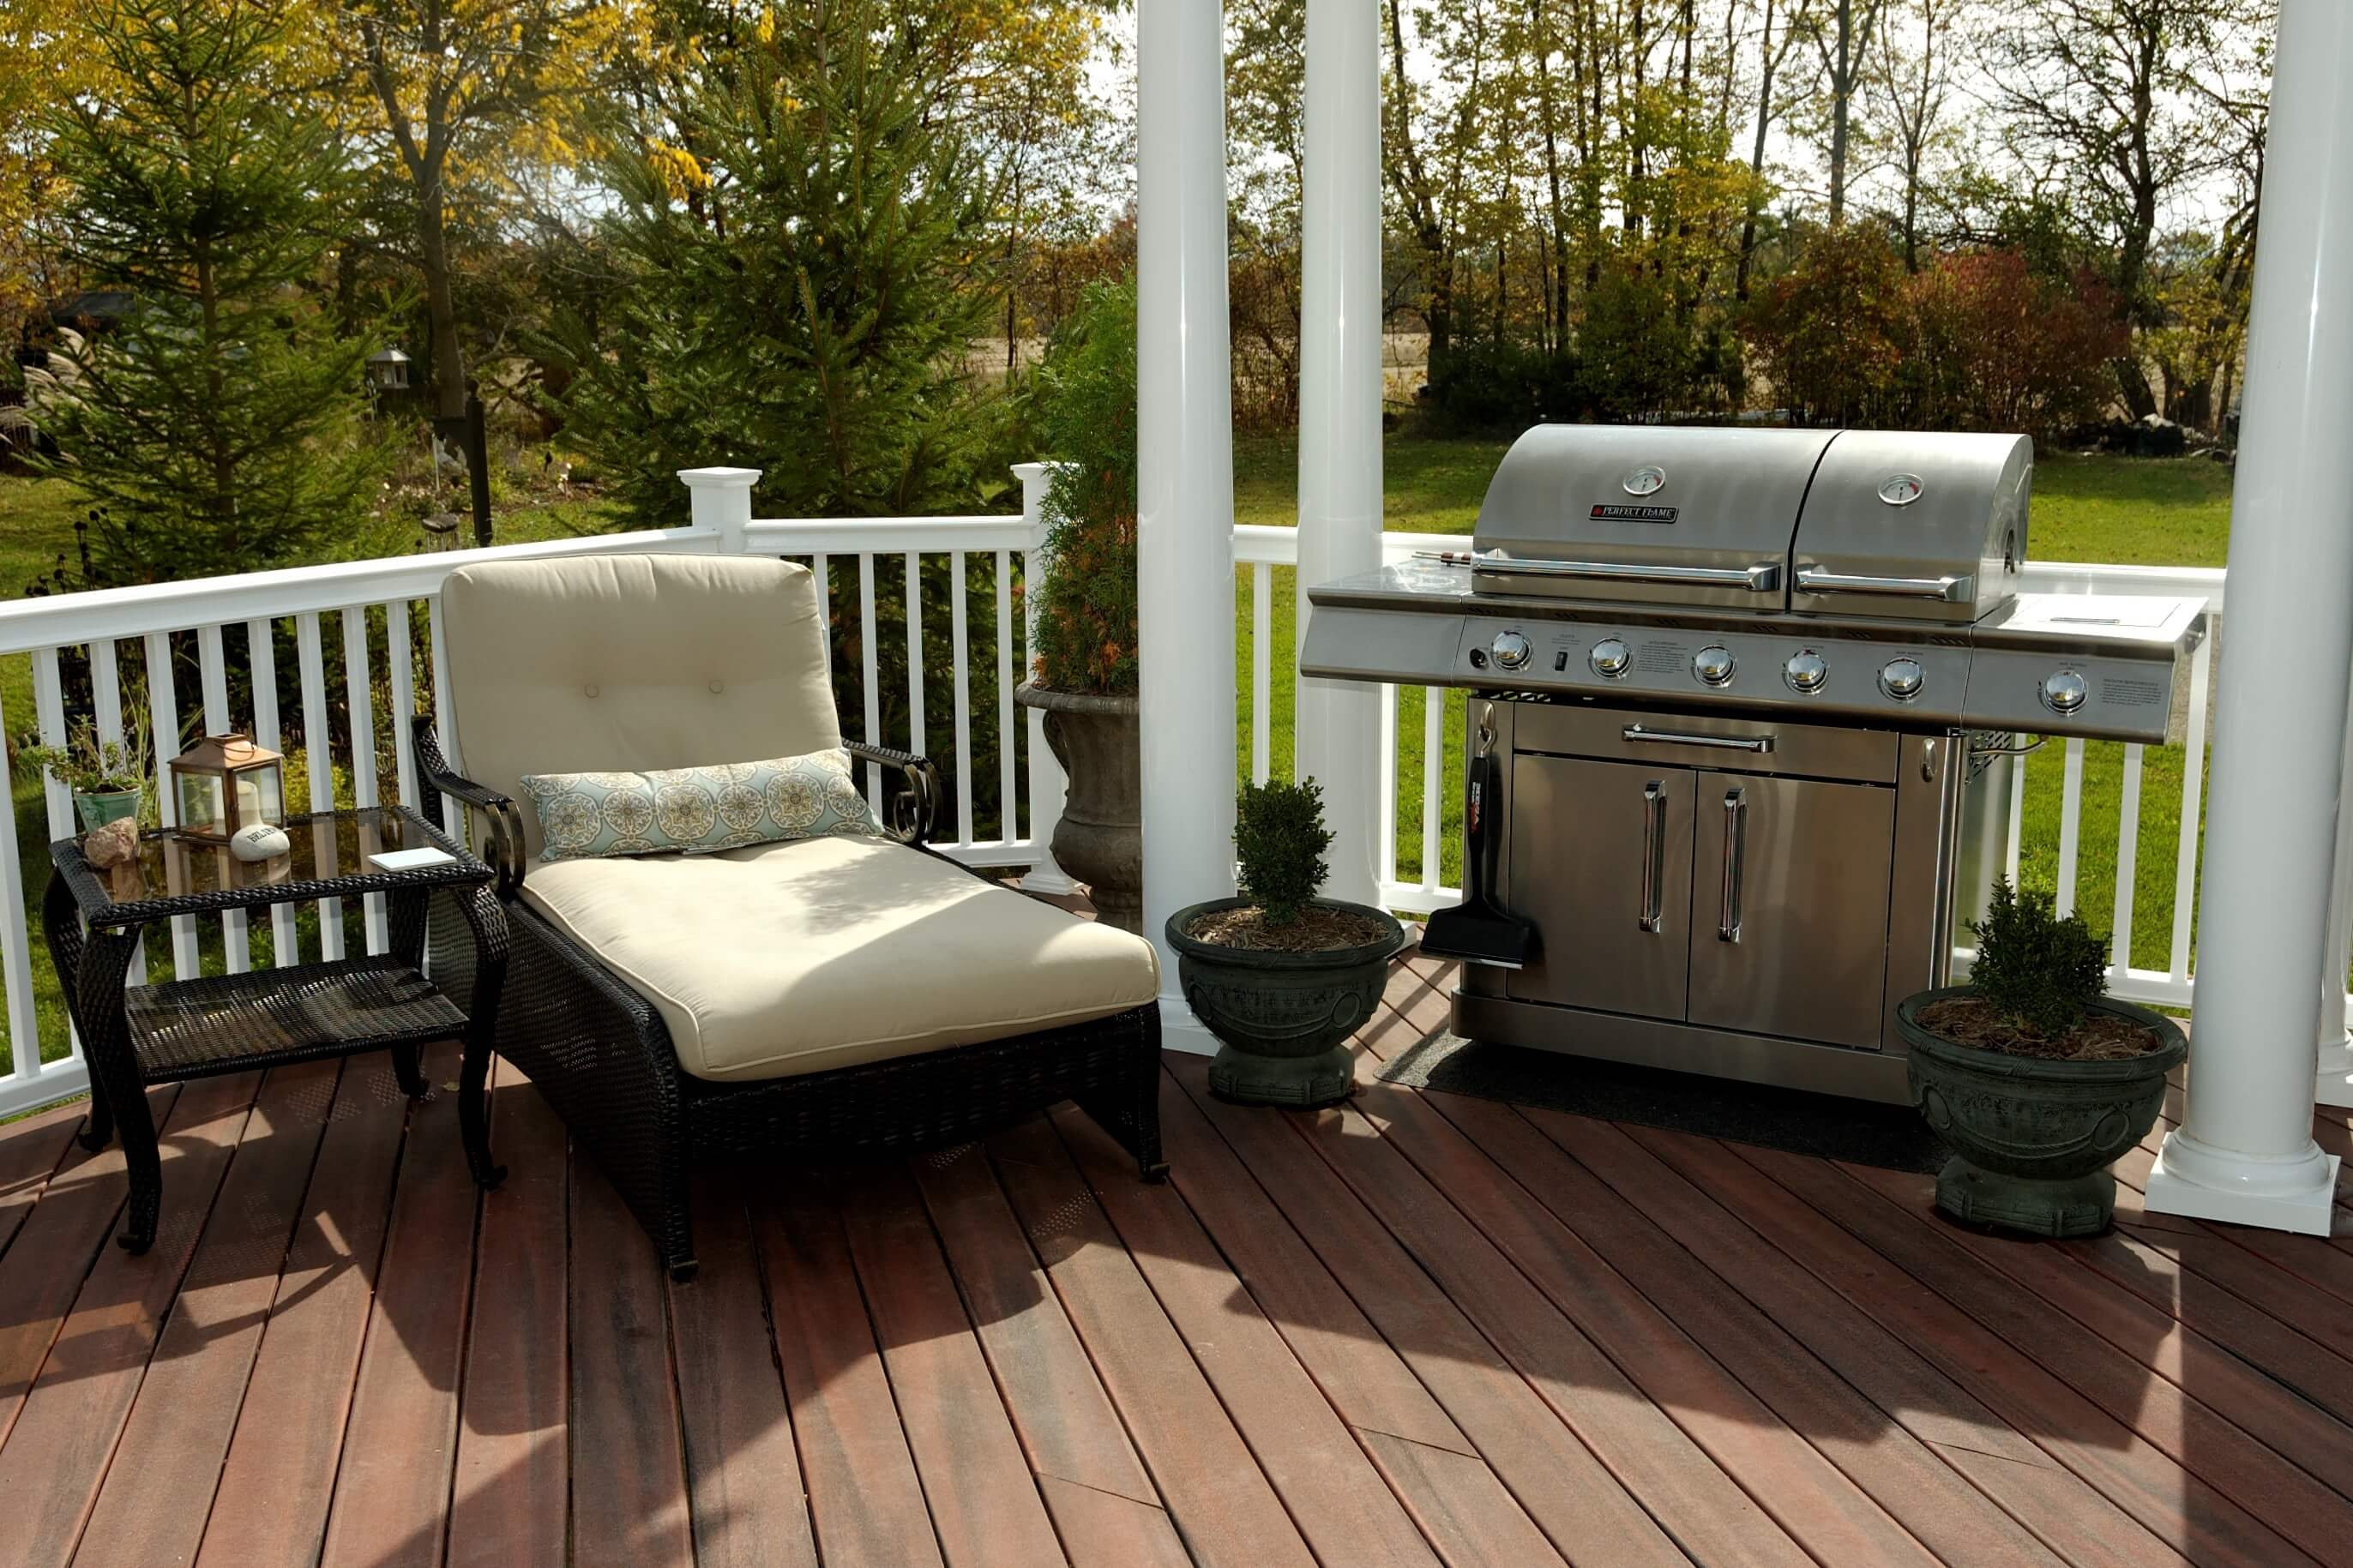 Deck with barbeque